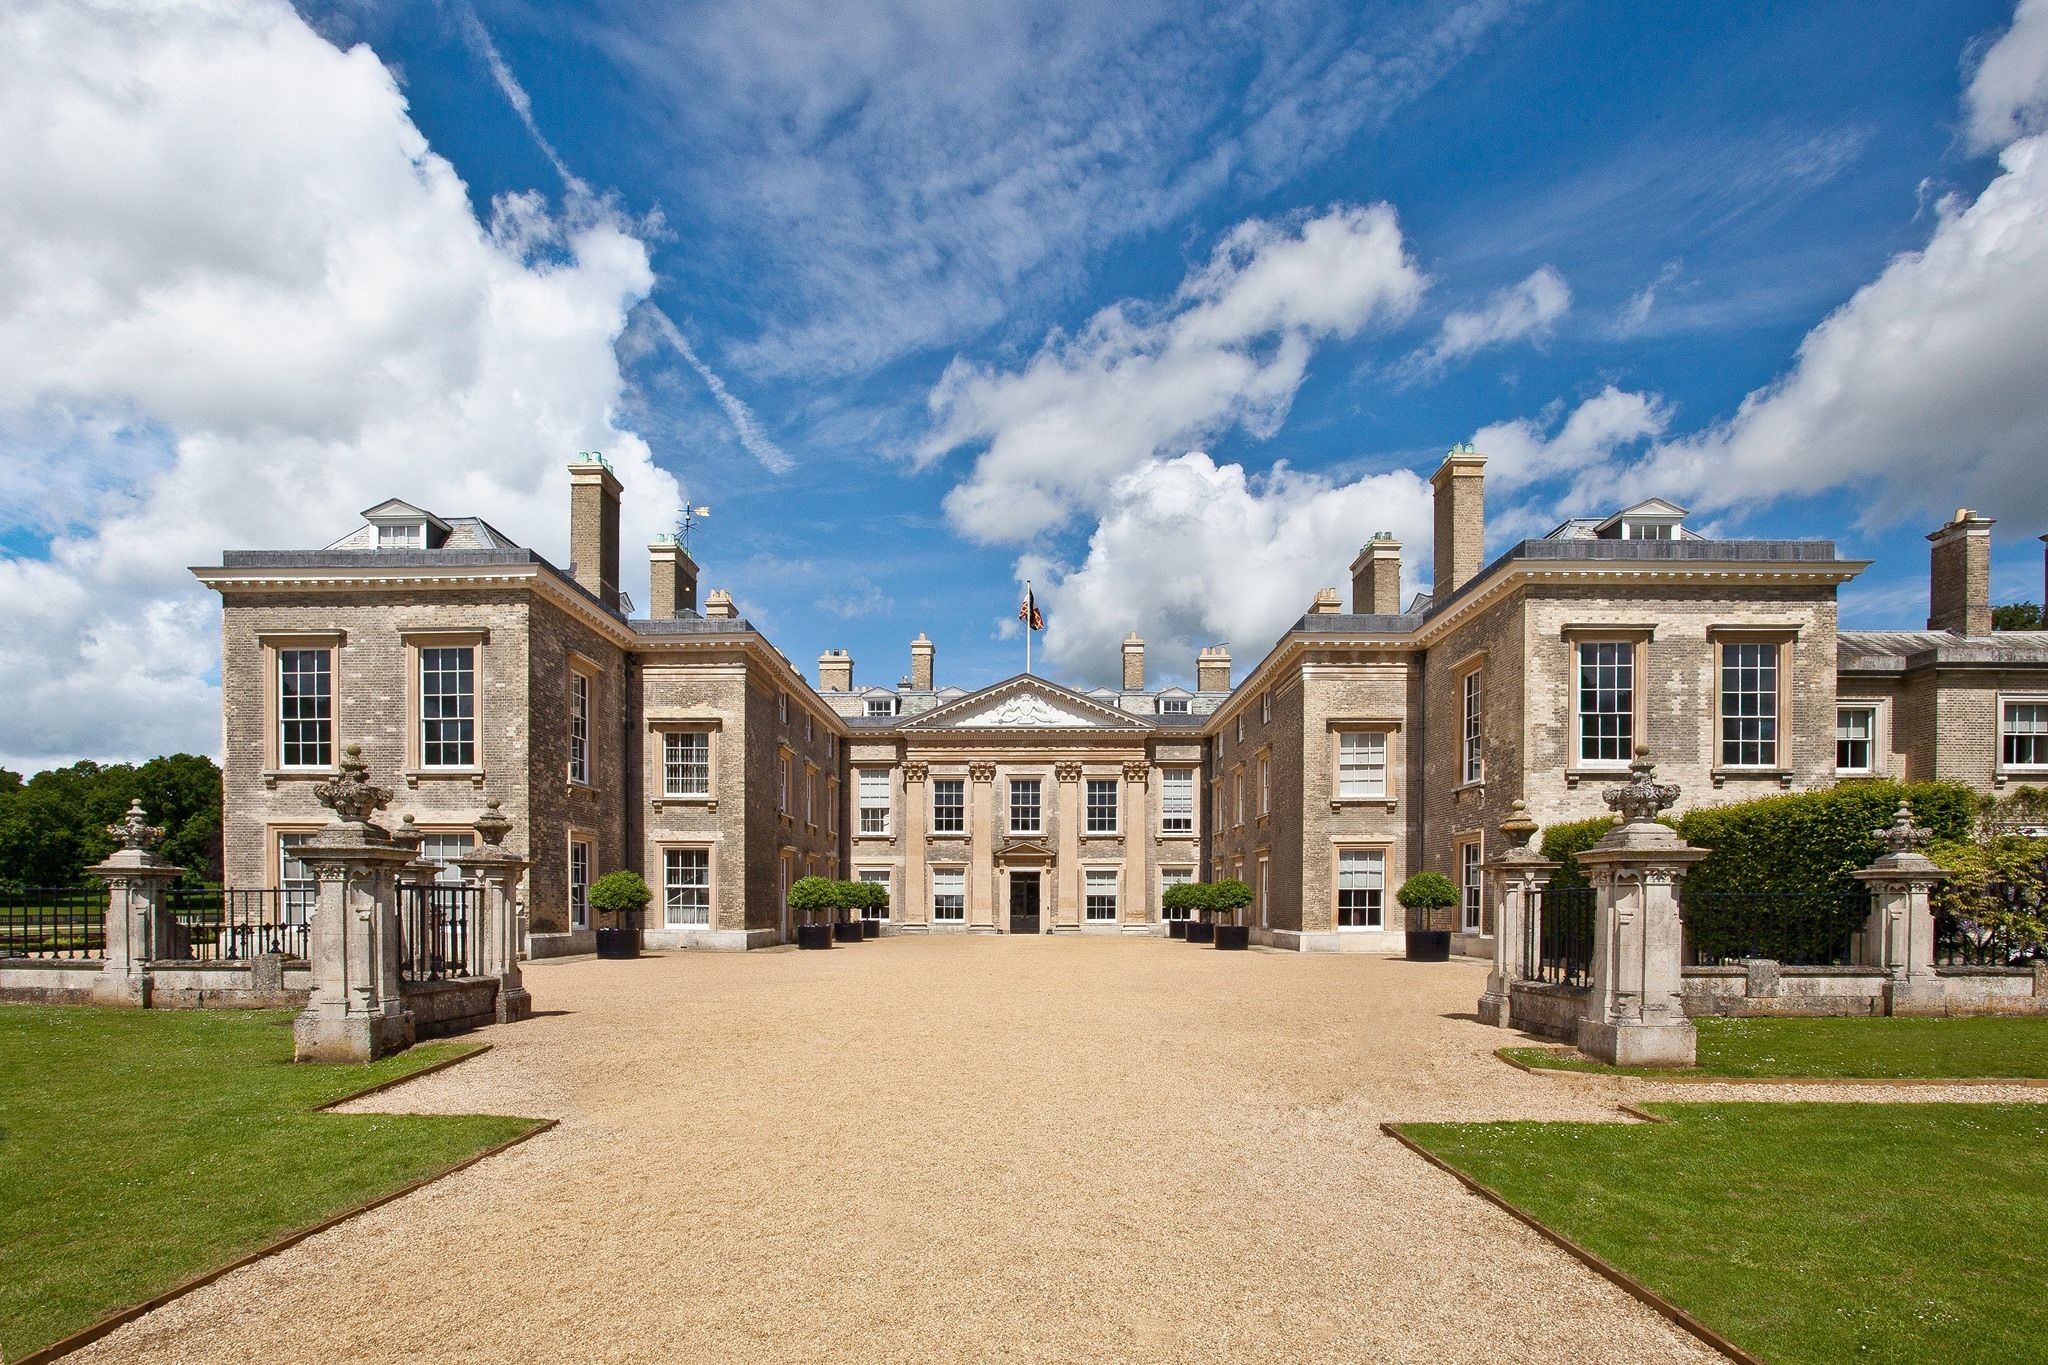 Princess Diana's Childhood Home in Althorp